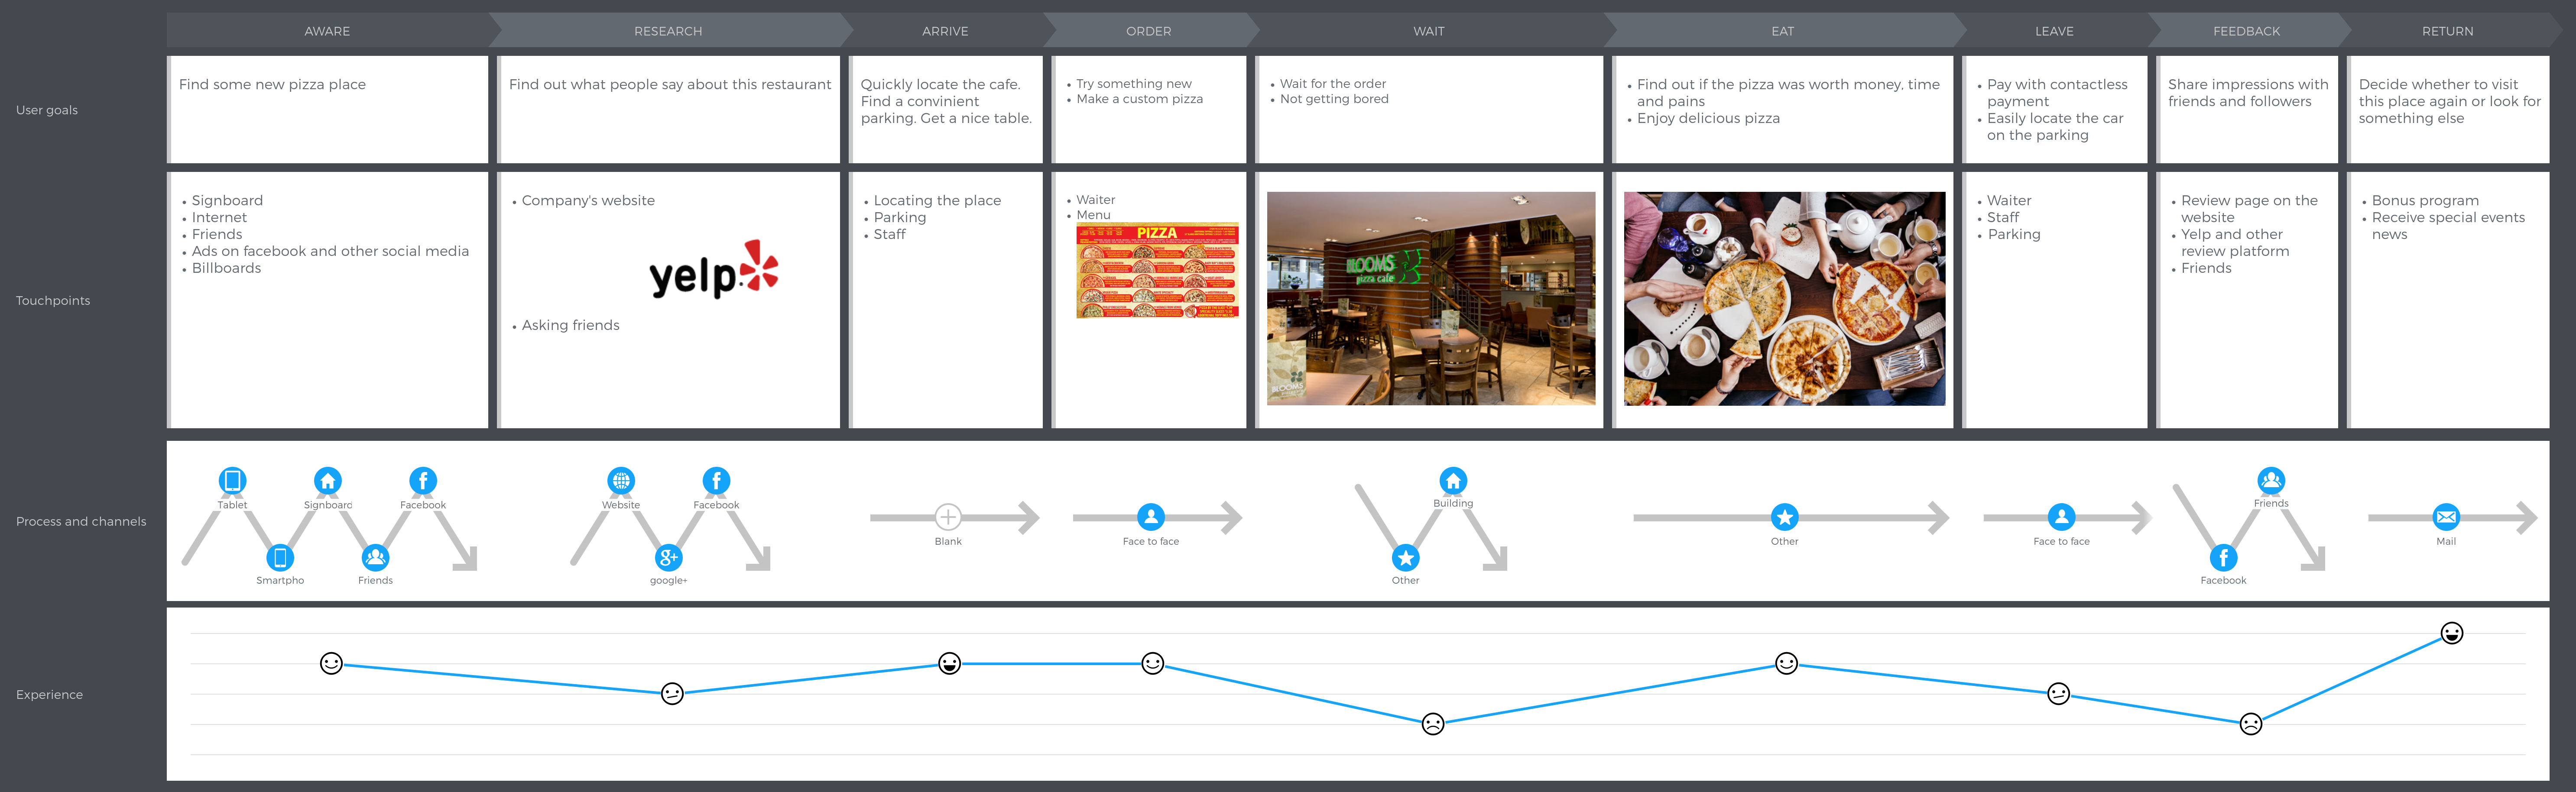 customer-journey-map-emotional-graph